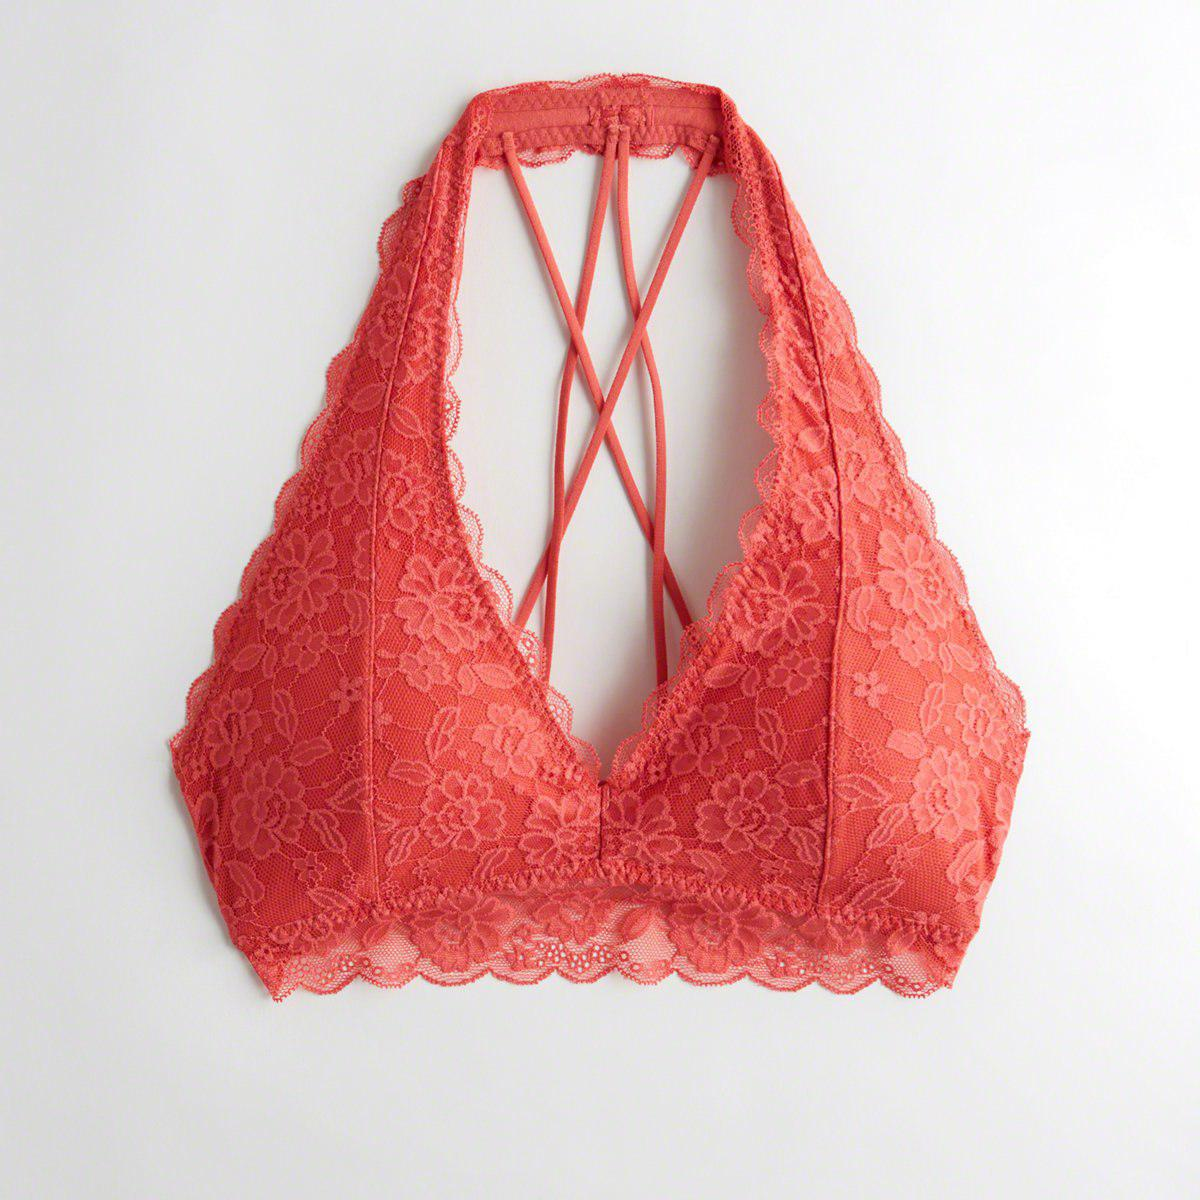 18291f4a3d126 Hollister. Women s Red Girls Strappy Halter Bralette With Removable Pads  From Hollister